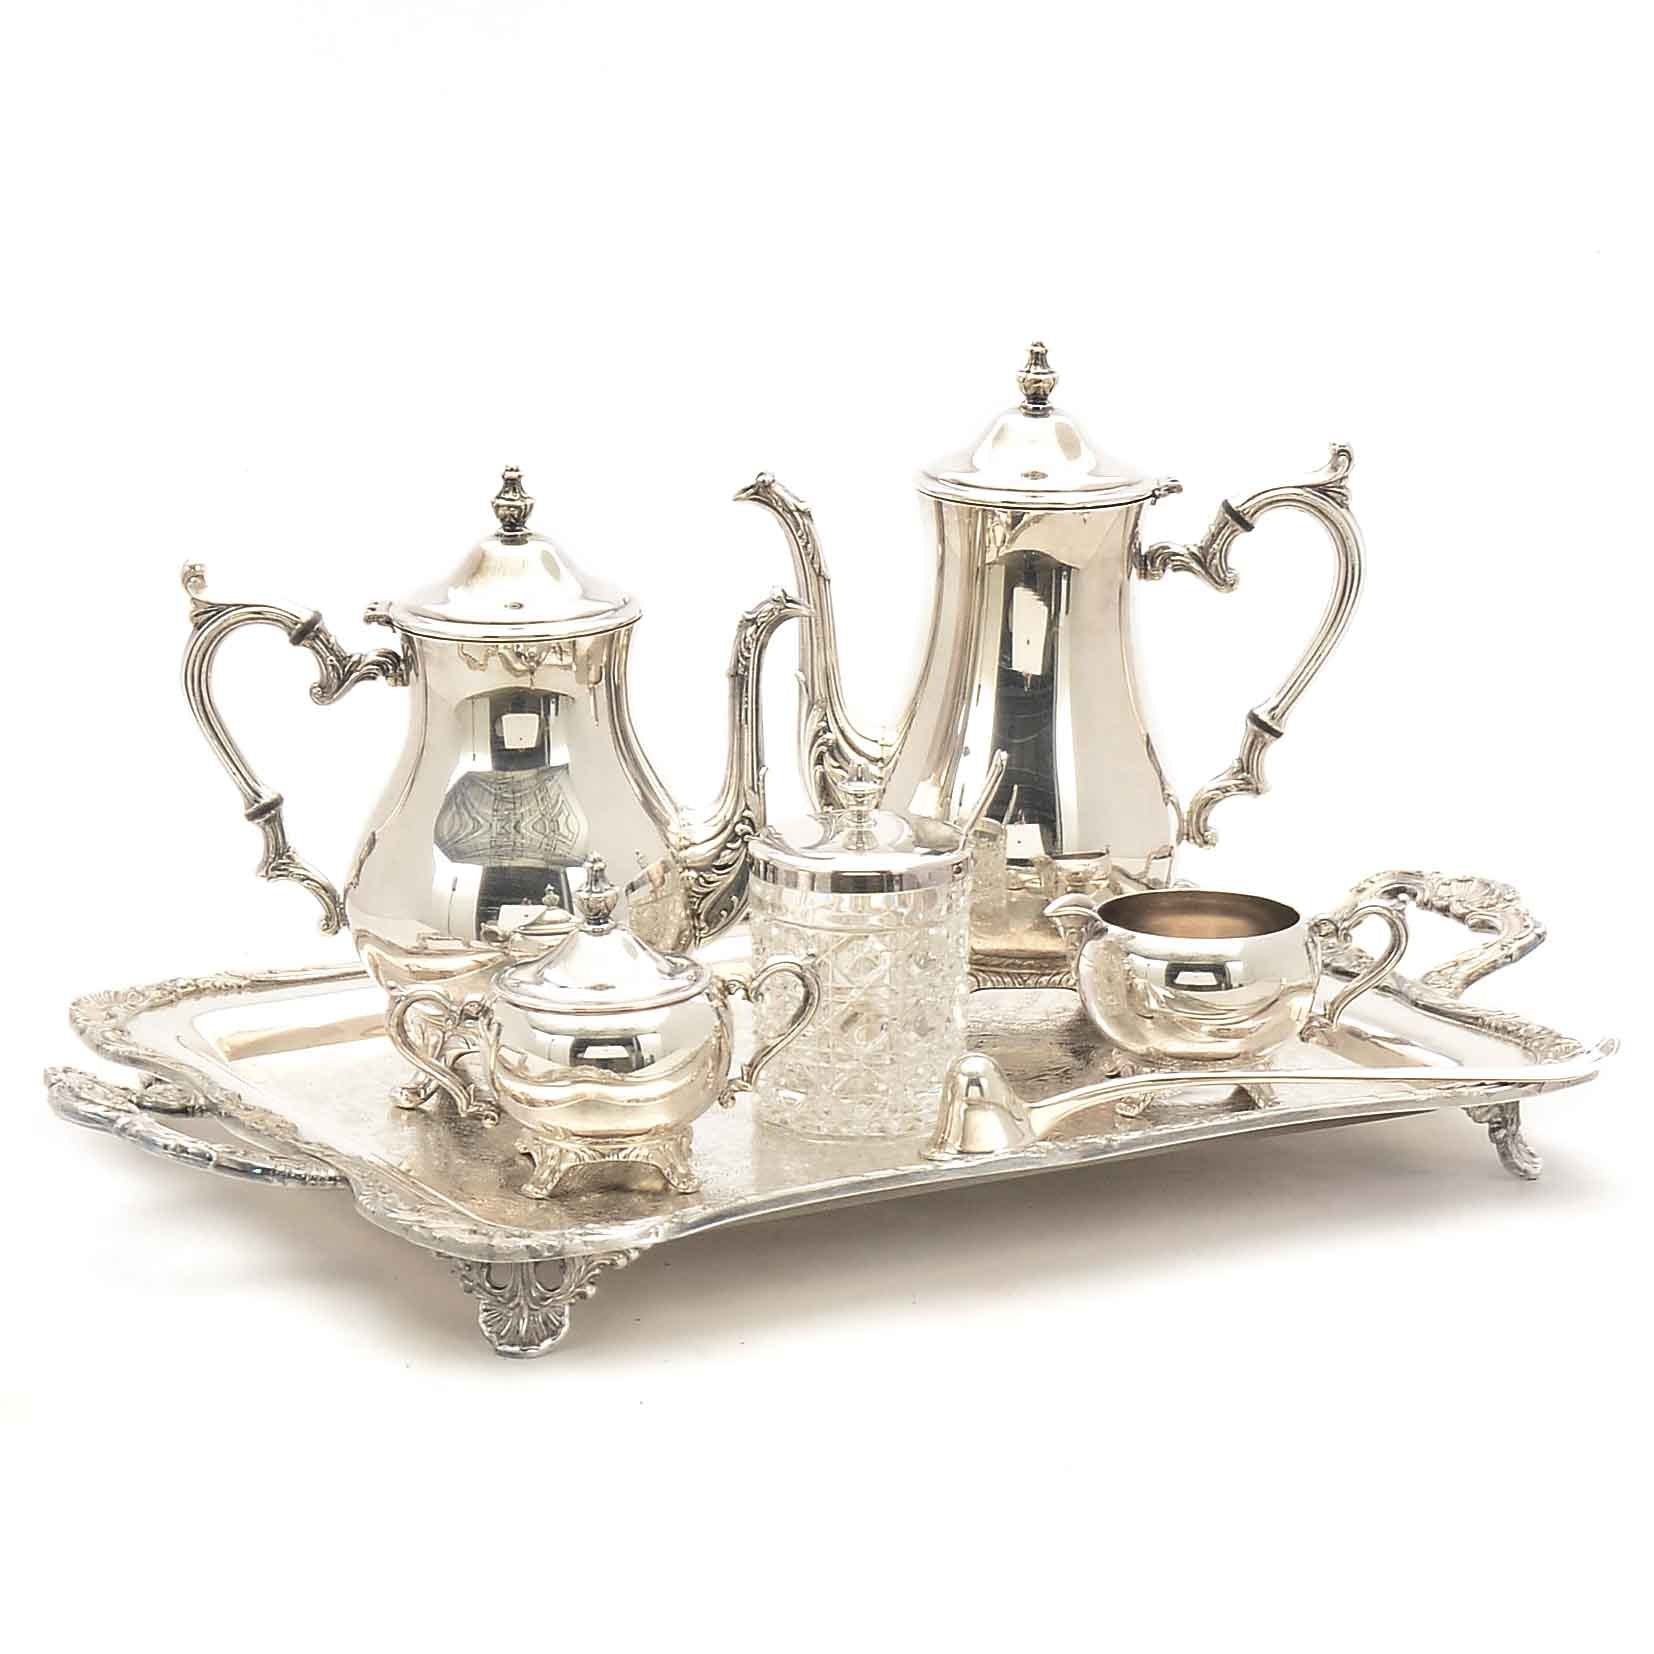 Wm. Rogers Silver Plate Tea Service and Other Serveware